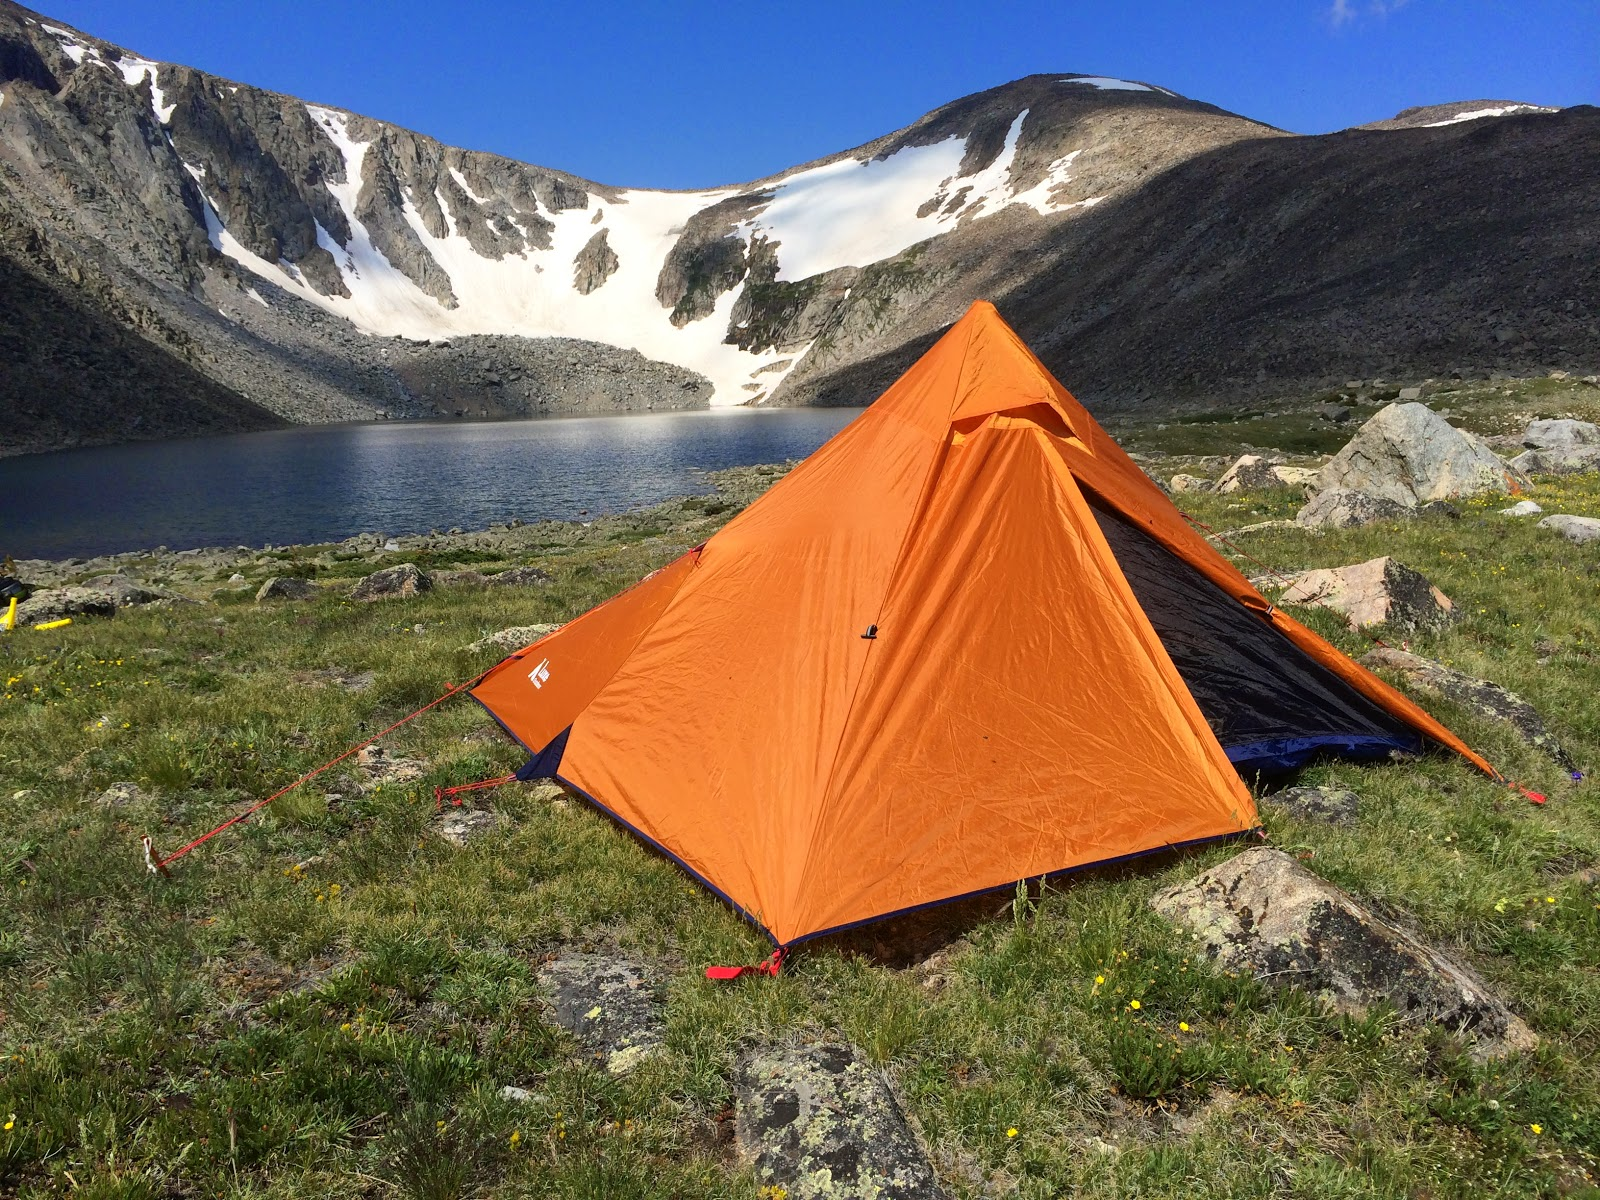 As most of my backpacking is solo and in the shoulder seasons (late Fall and early Spring) I wanted a lightweight tarp-style tent that could be easily ... & How Many Tents Do You Need |Camp Primitive - Out There Somewhere